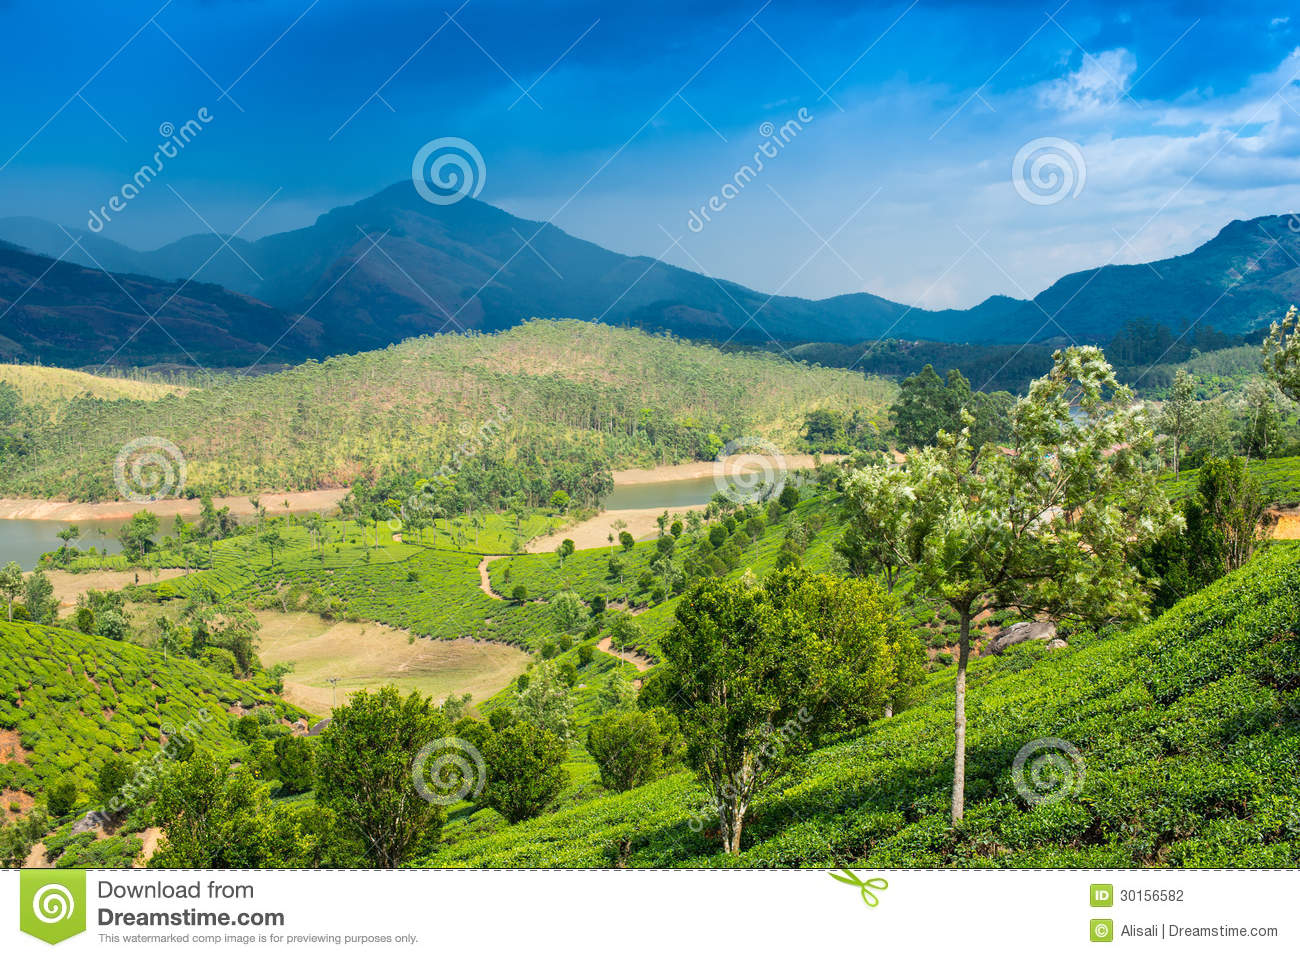 Landscape Tea Plantations, Mountains And The River In India Stock ...